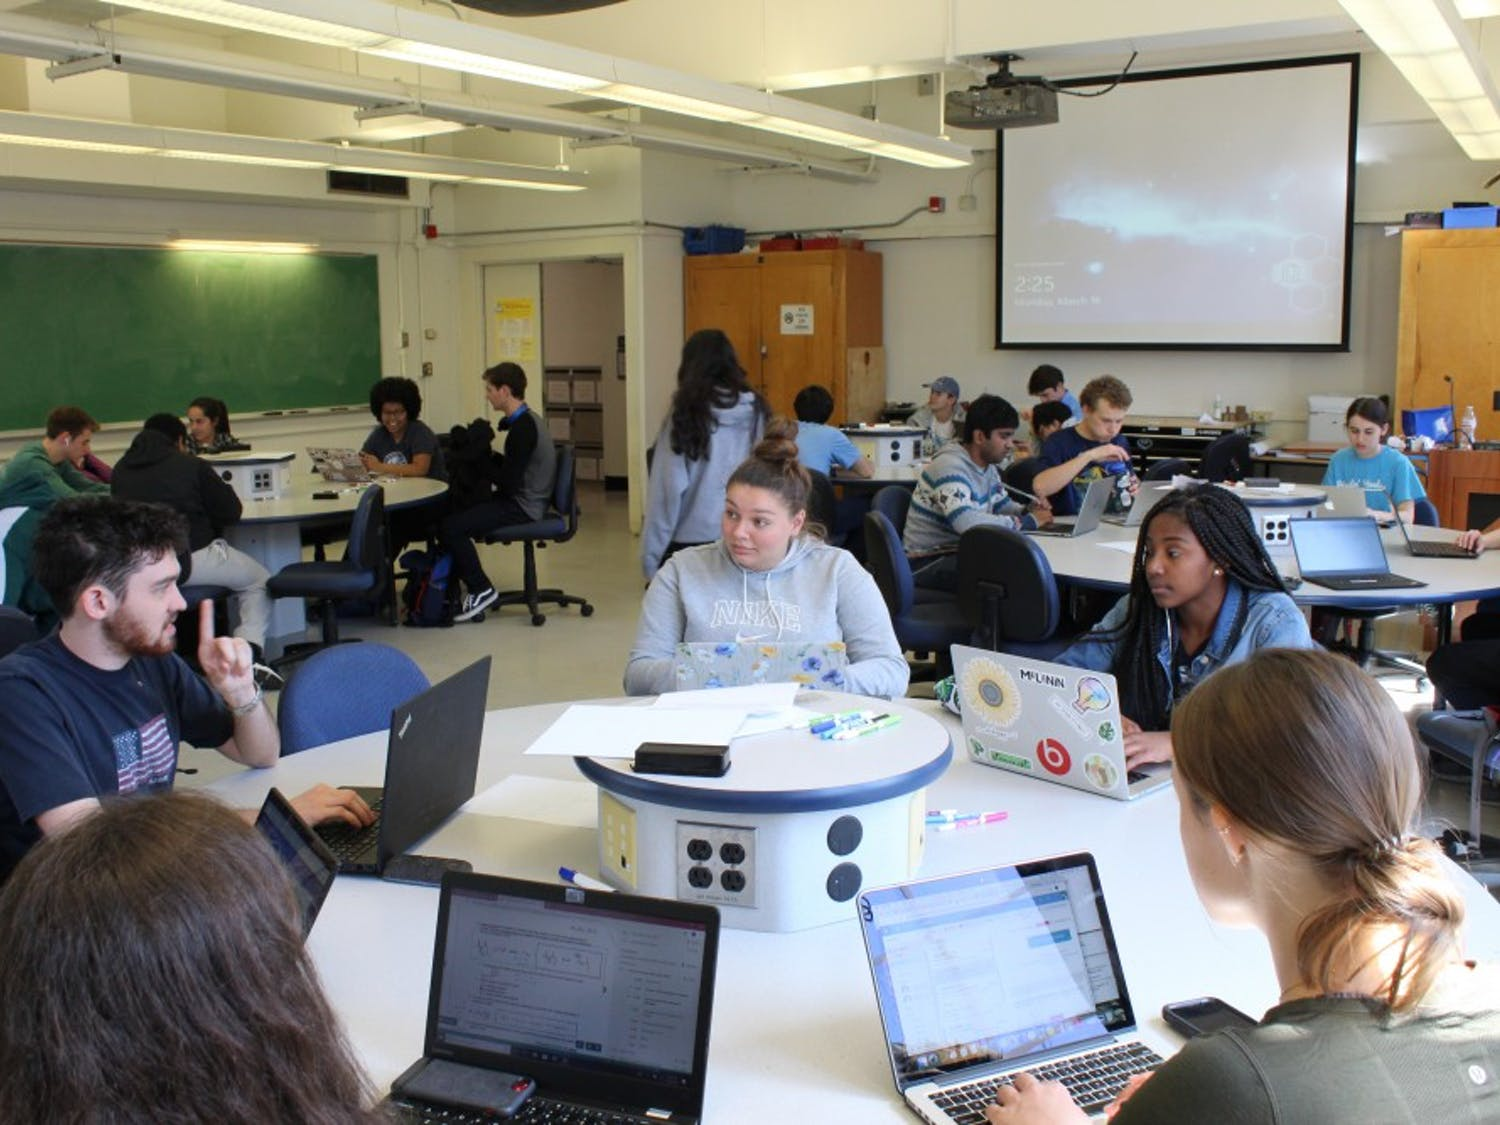 Students prepare for class in Phillips 208 on Monday, March 18, 2019. This is one of five classrooms considered a 'Studio Classroom' and just one type of classroom in Carolina's Flexible Learning Spaces Initiative. The Initiative's purpose is to improve student-focused interaction through the modernization of classrooms.